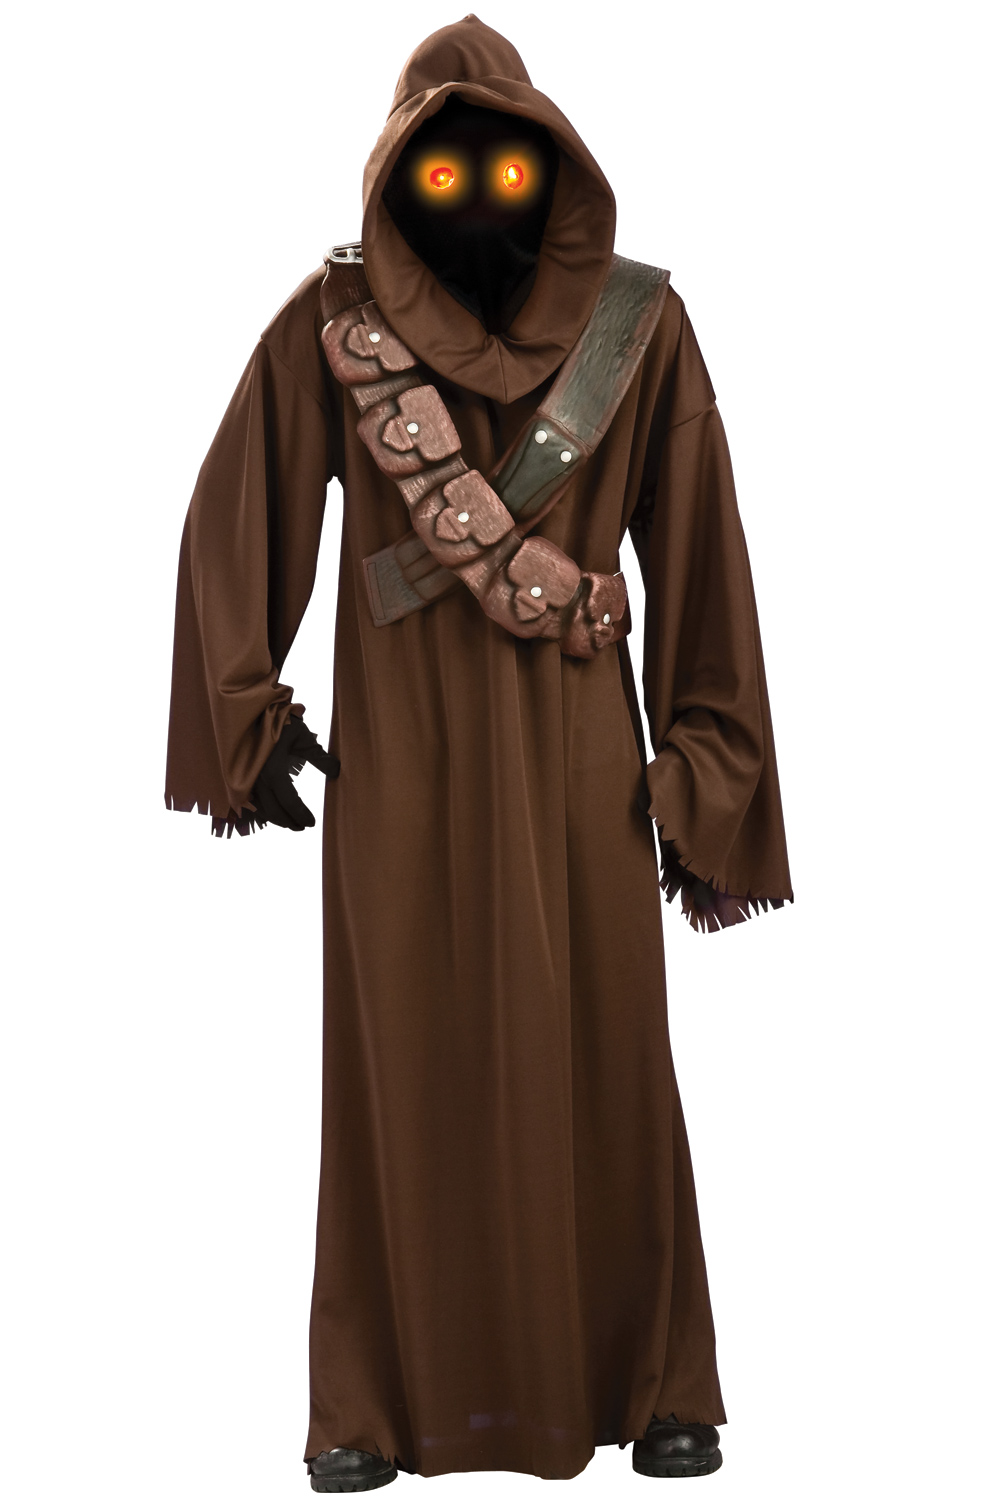 Click Here to buy Star Wars Jawa Adult Costume from Pure Costumes